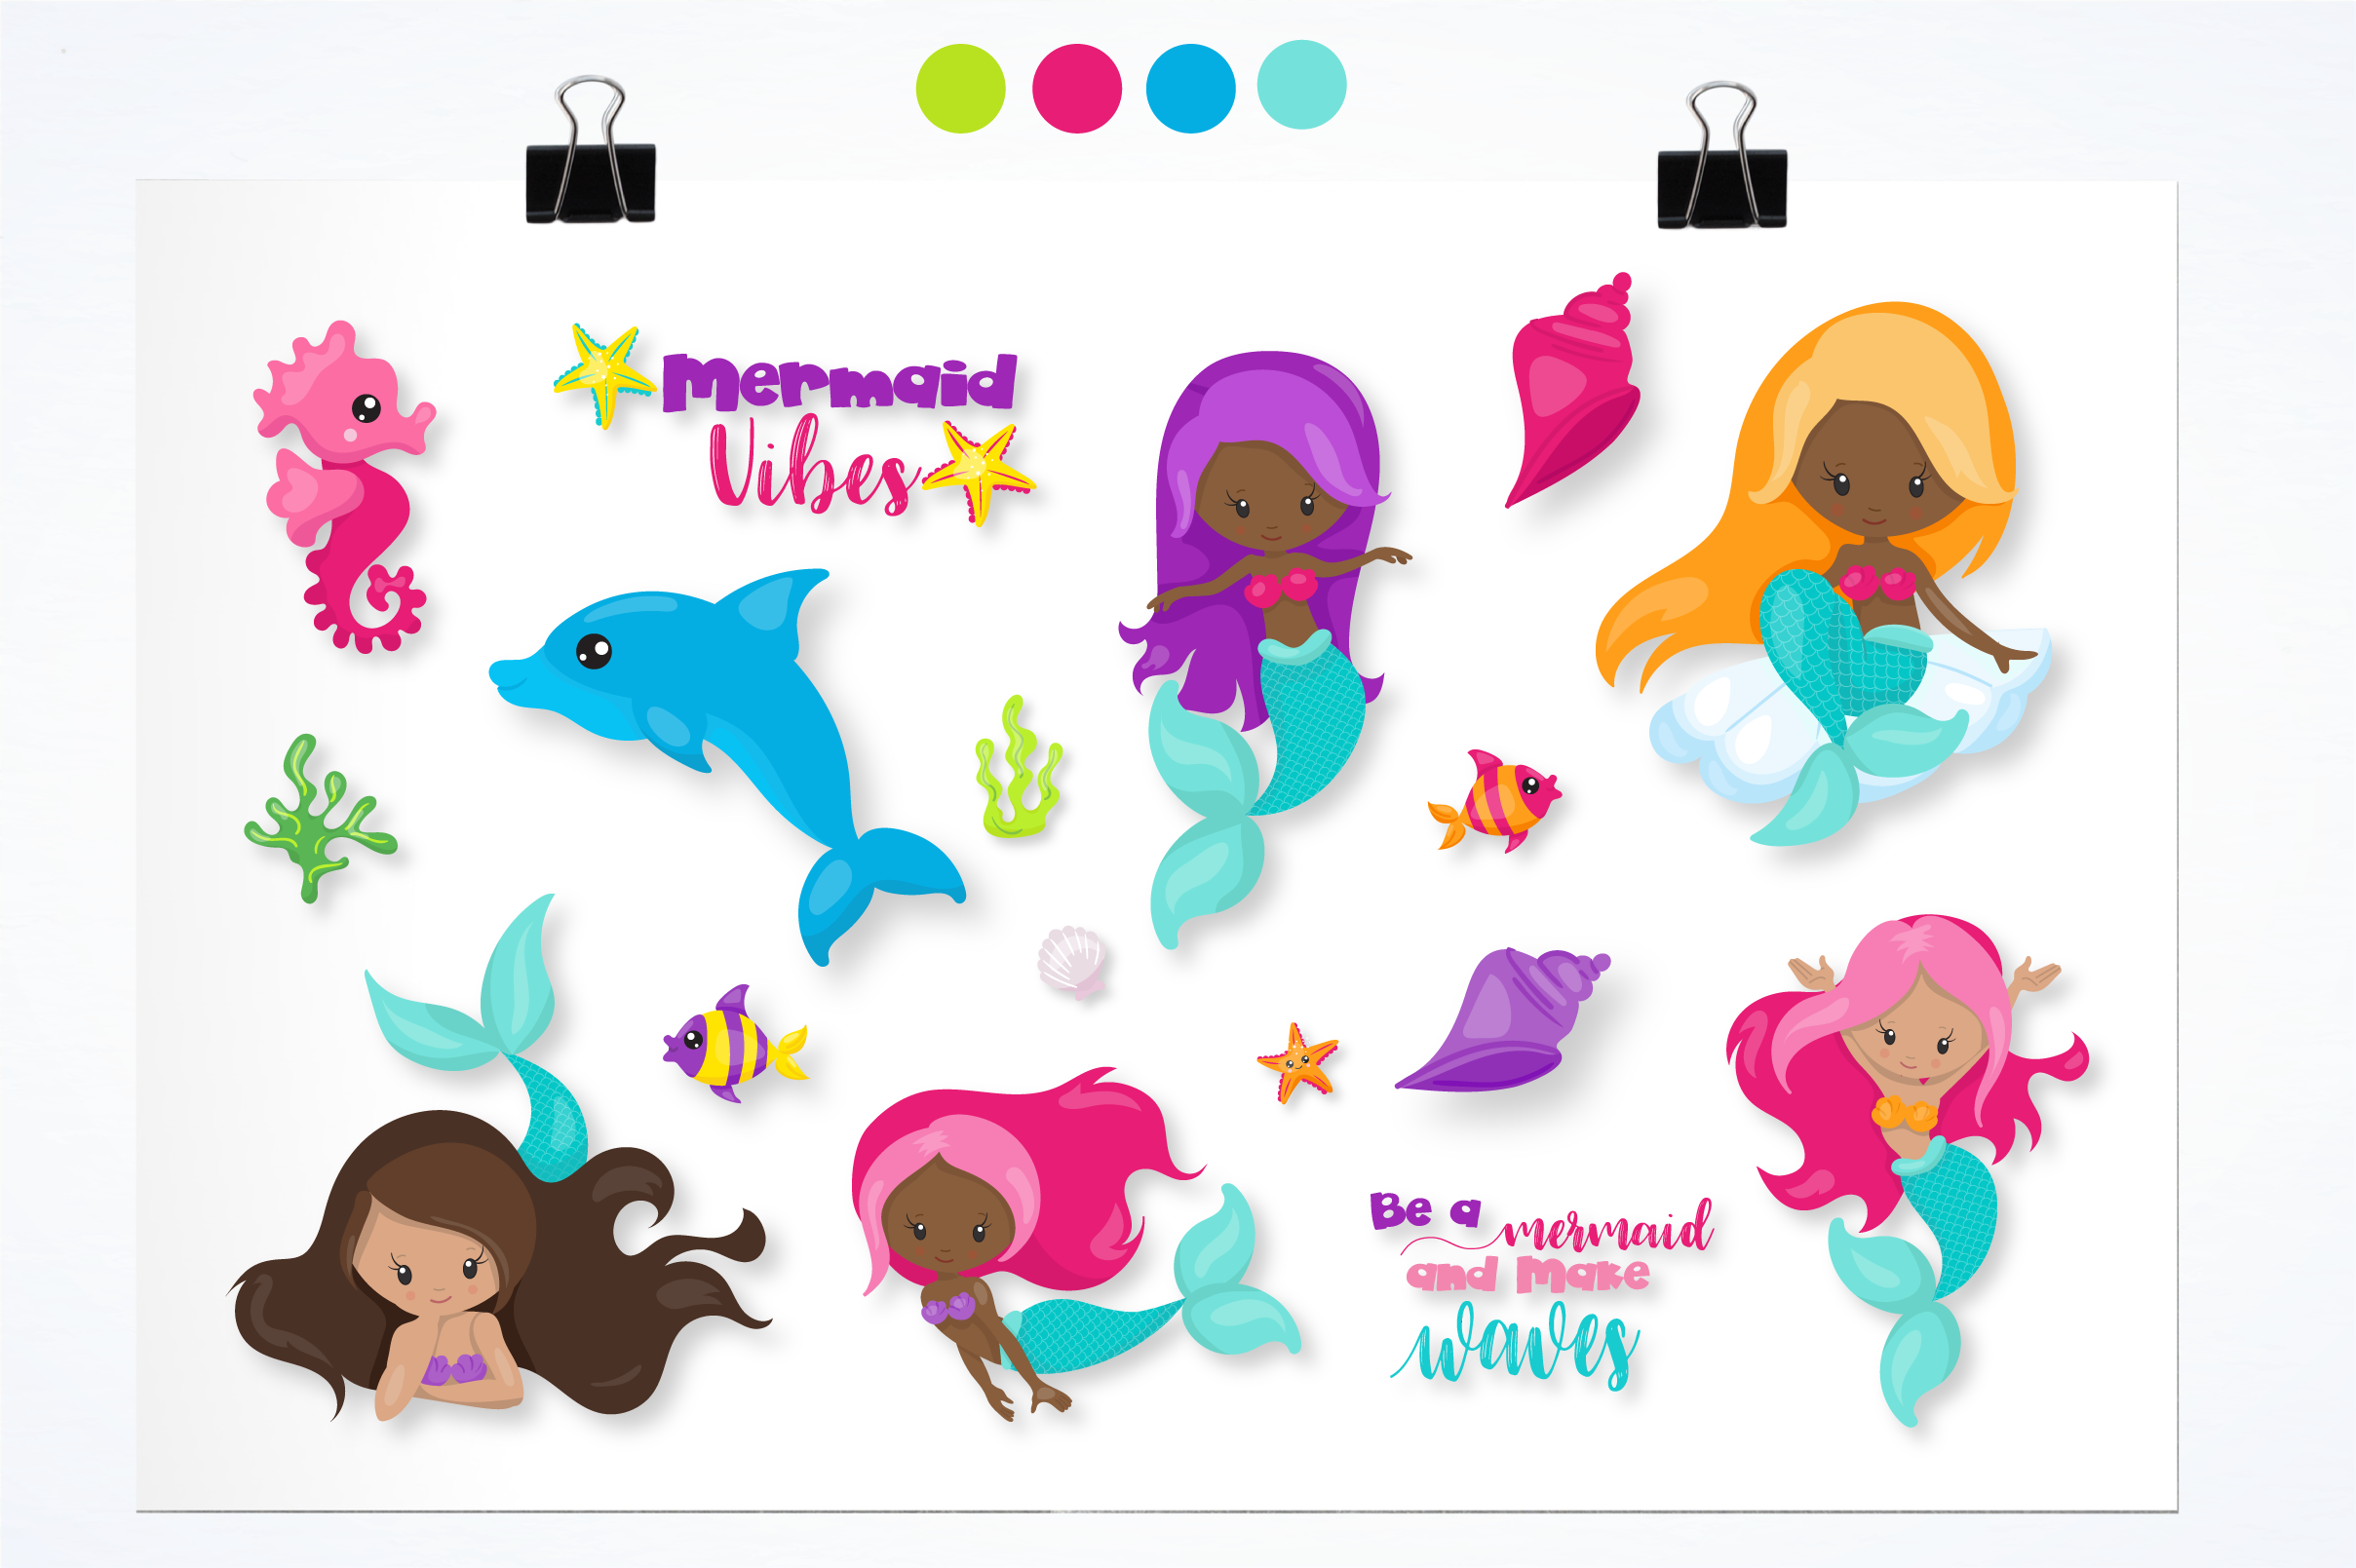 mermaid vibes graphics and illustrations example image 2